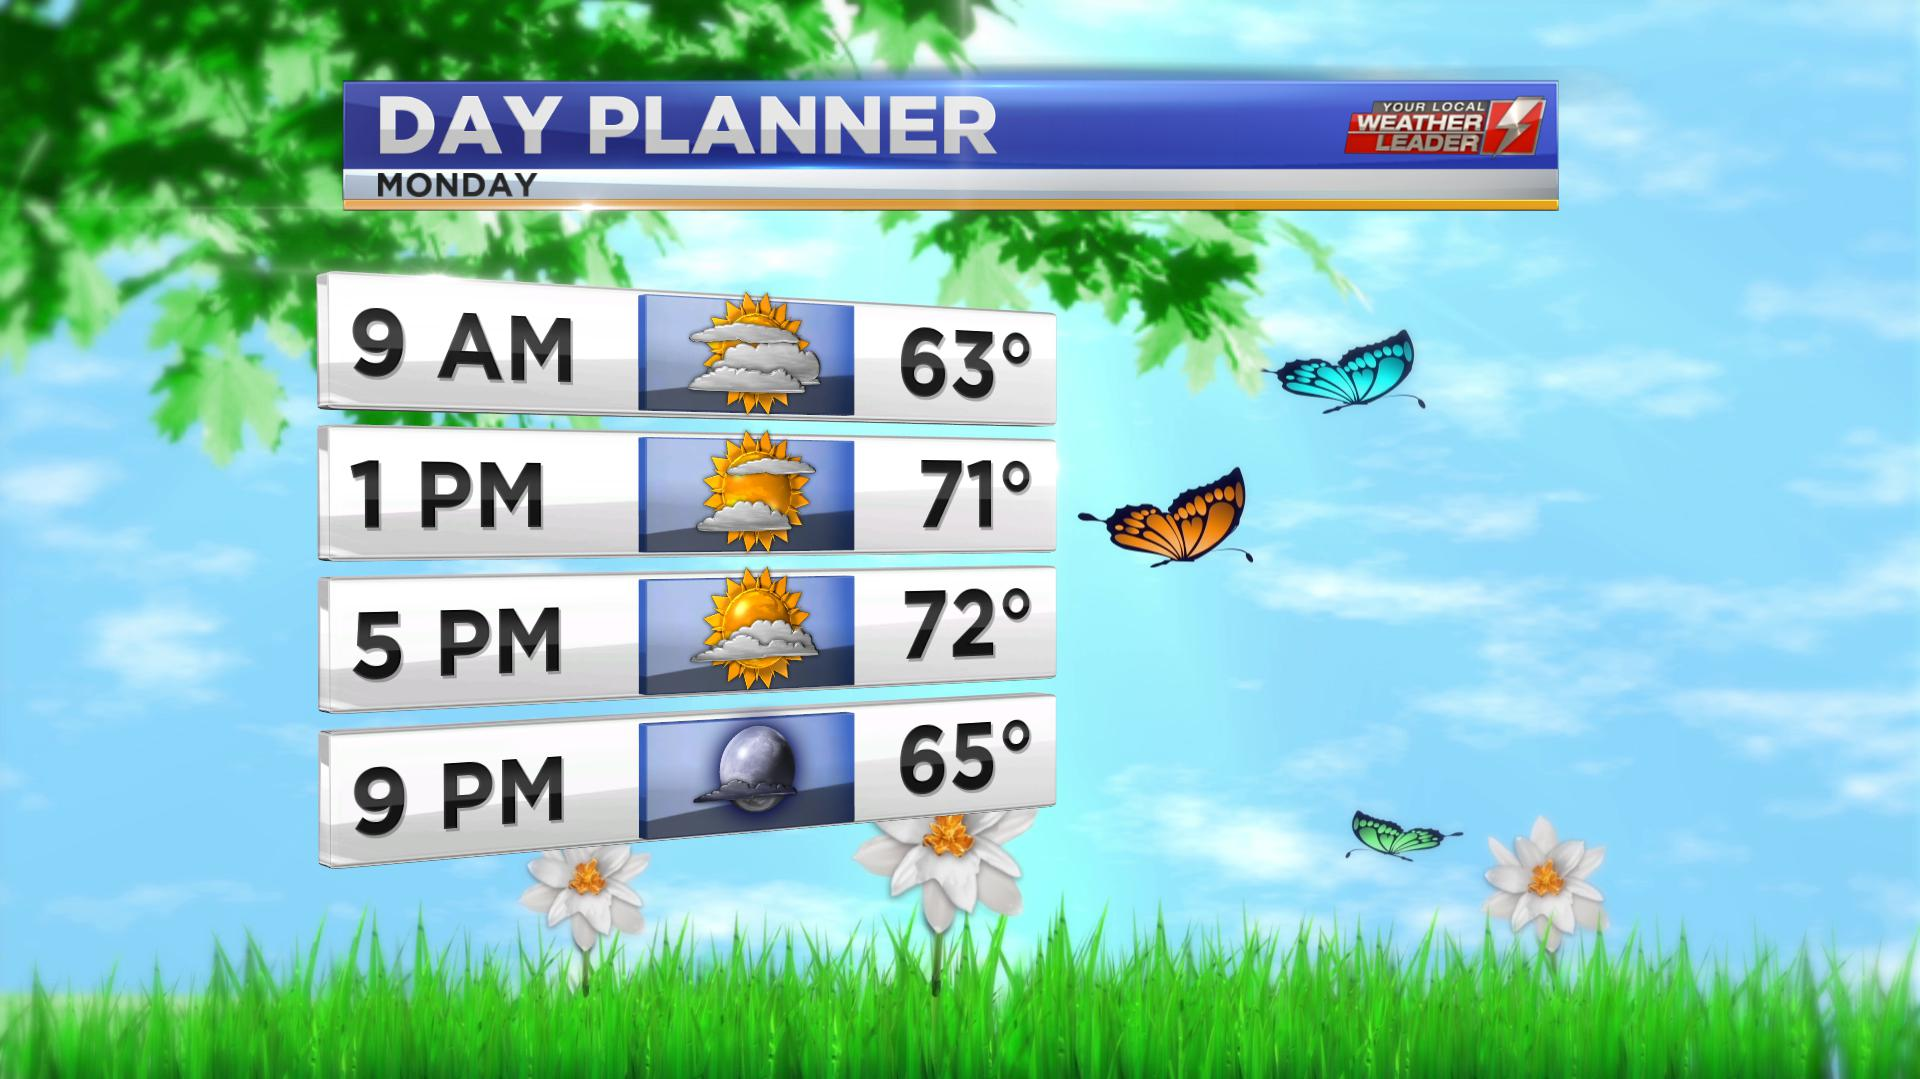 Day Planner Forecast for Monday 06 May 2019